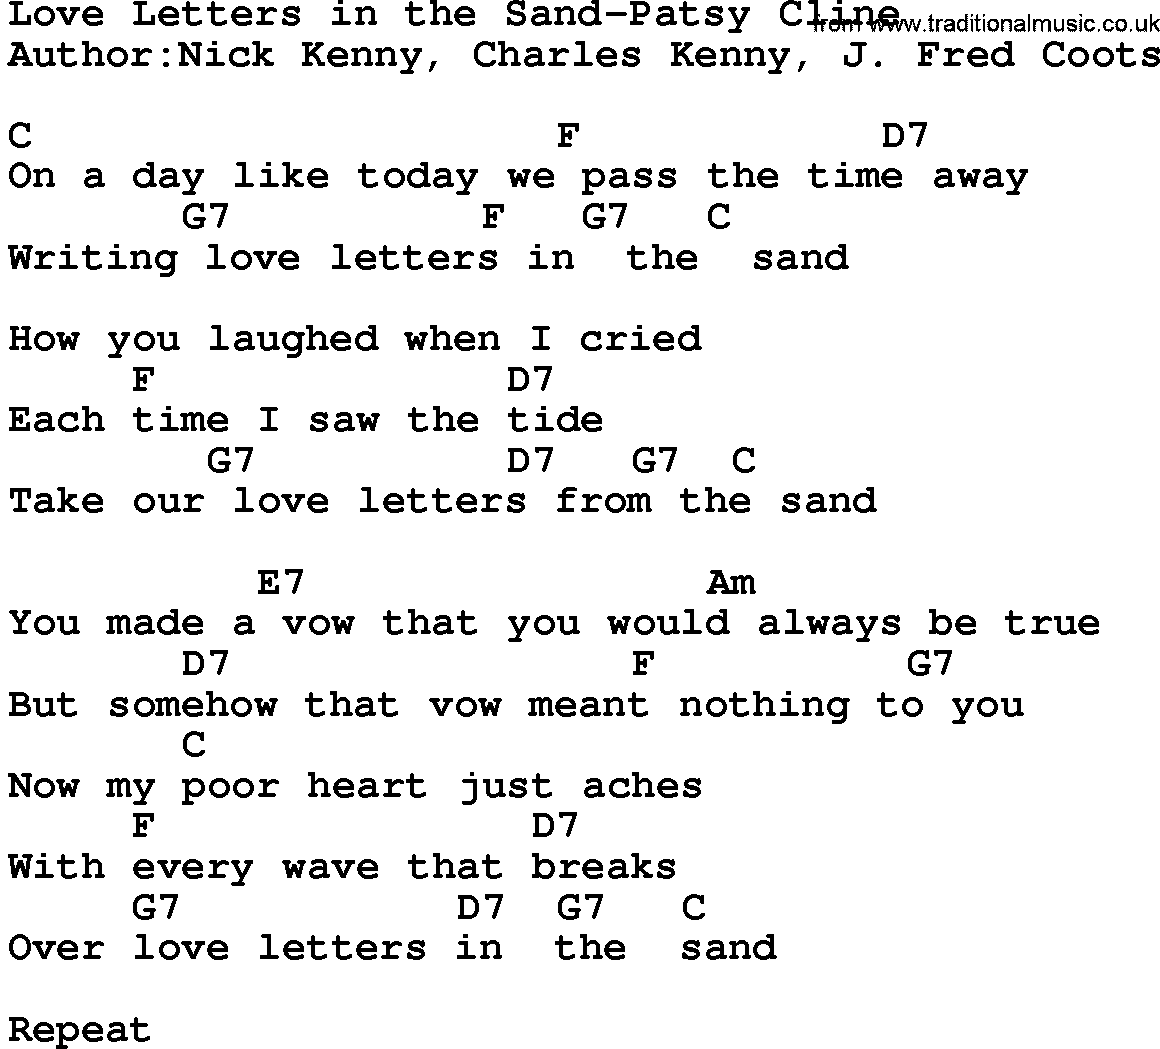 love letter song letters lyrics levelings 10011 | love letters in the sand patsy cline